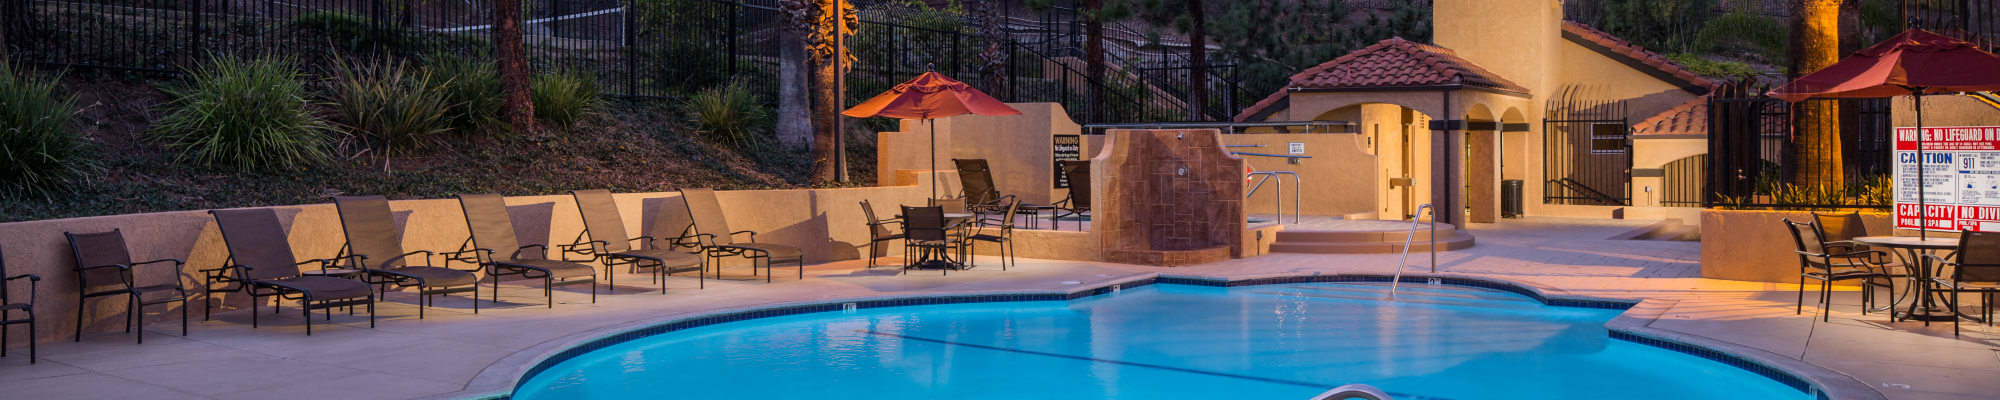 Amenities at Shadow Ridge Apartment Homes in Simi Valley, California